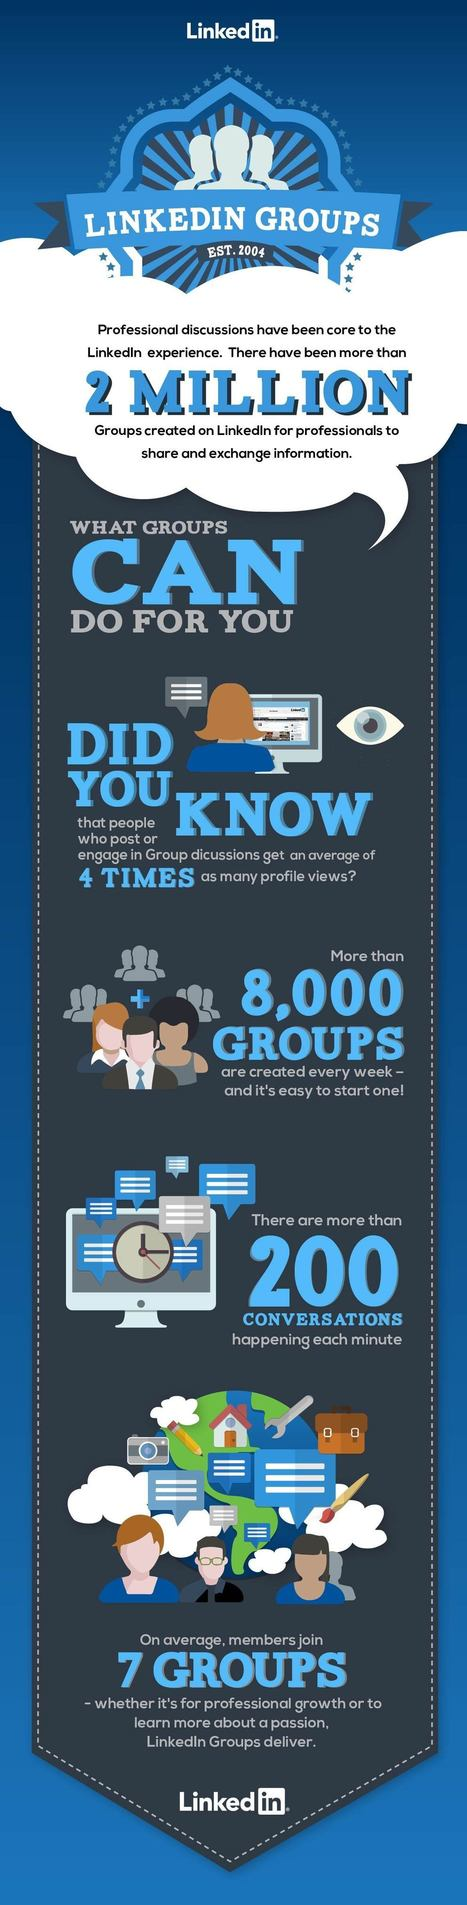 LinkedIn Introduces a New Look for Its Over 2 Million Groups   internet marketing   Scoop.it